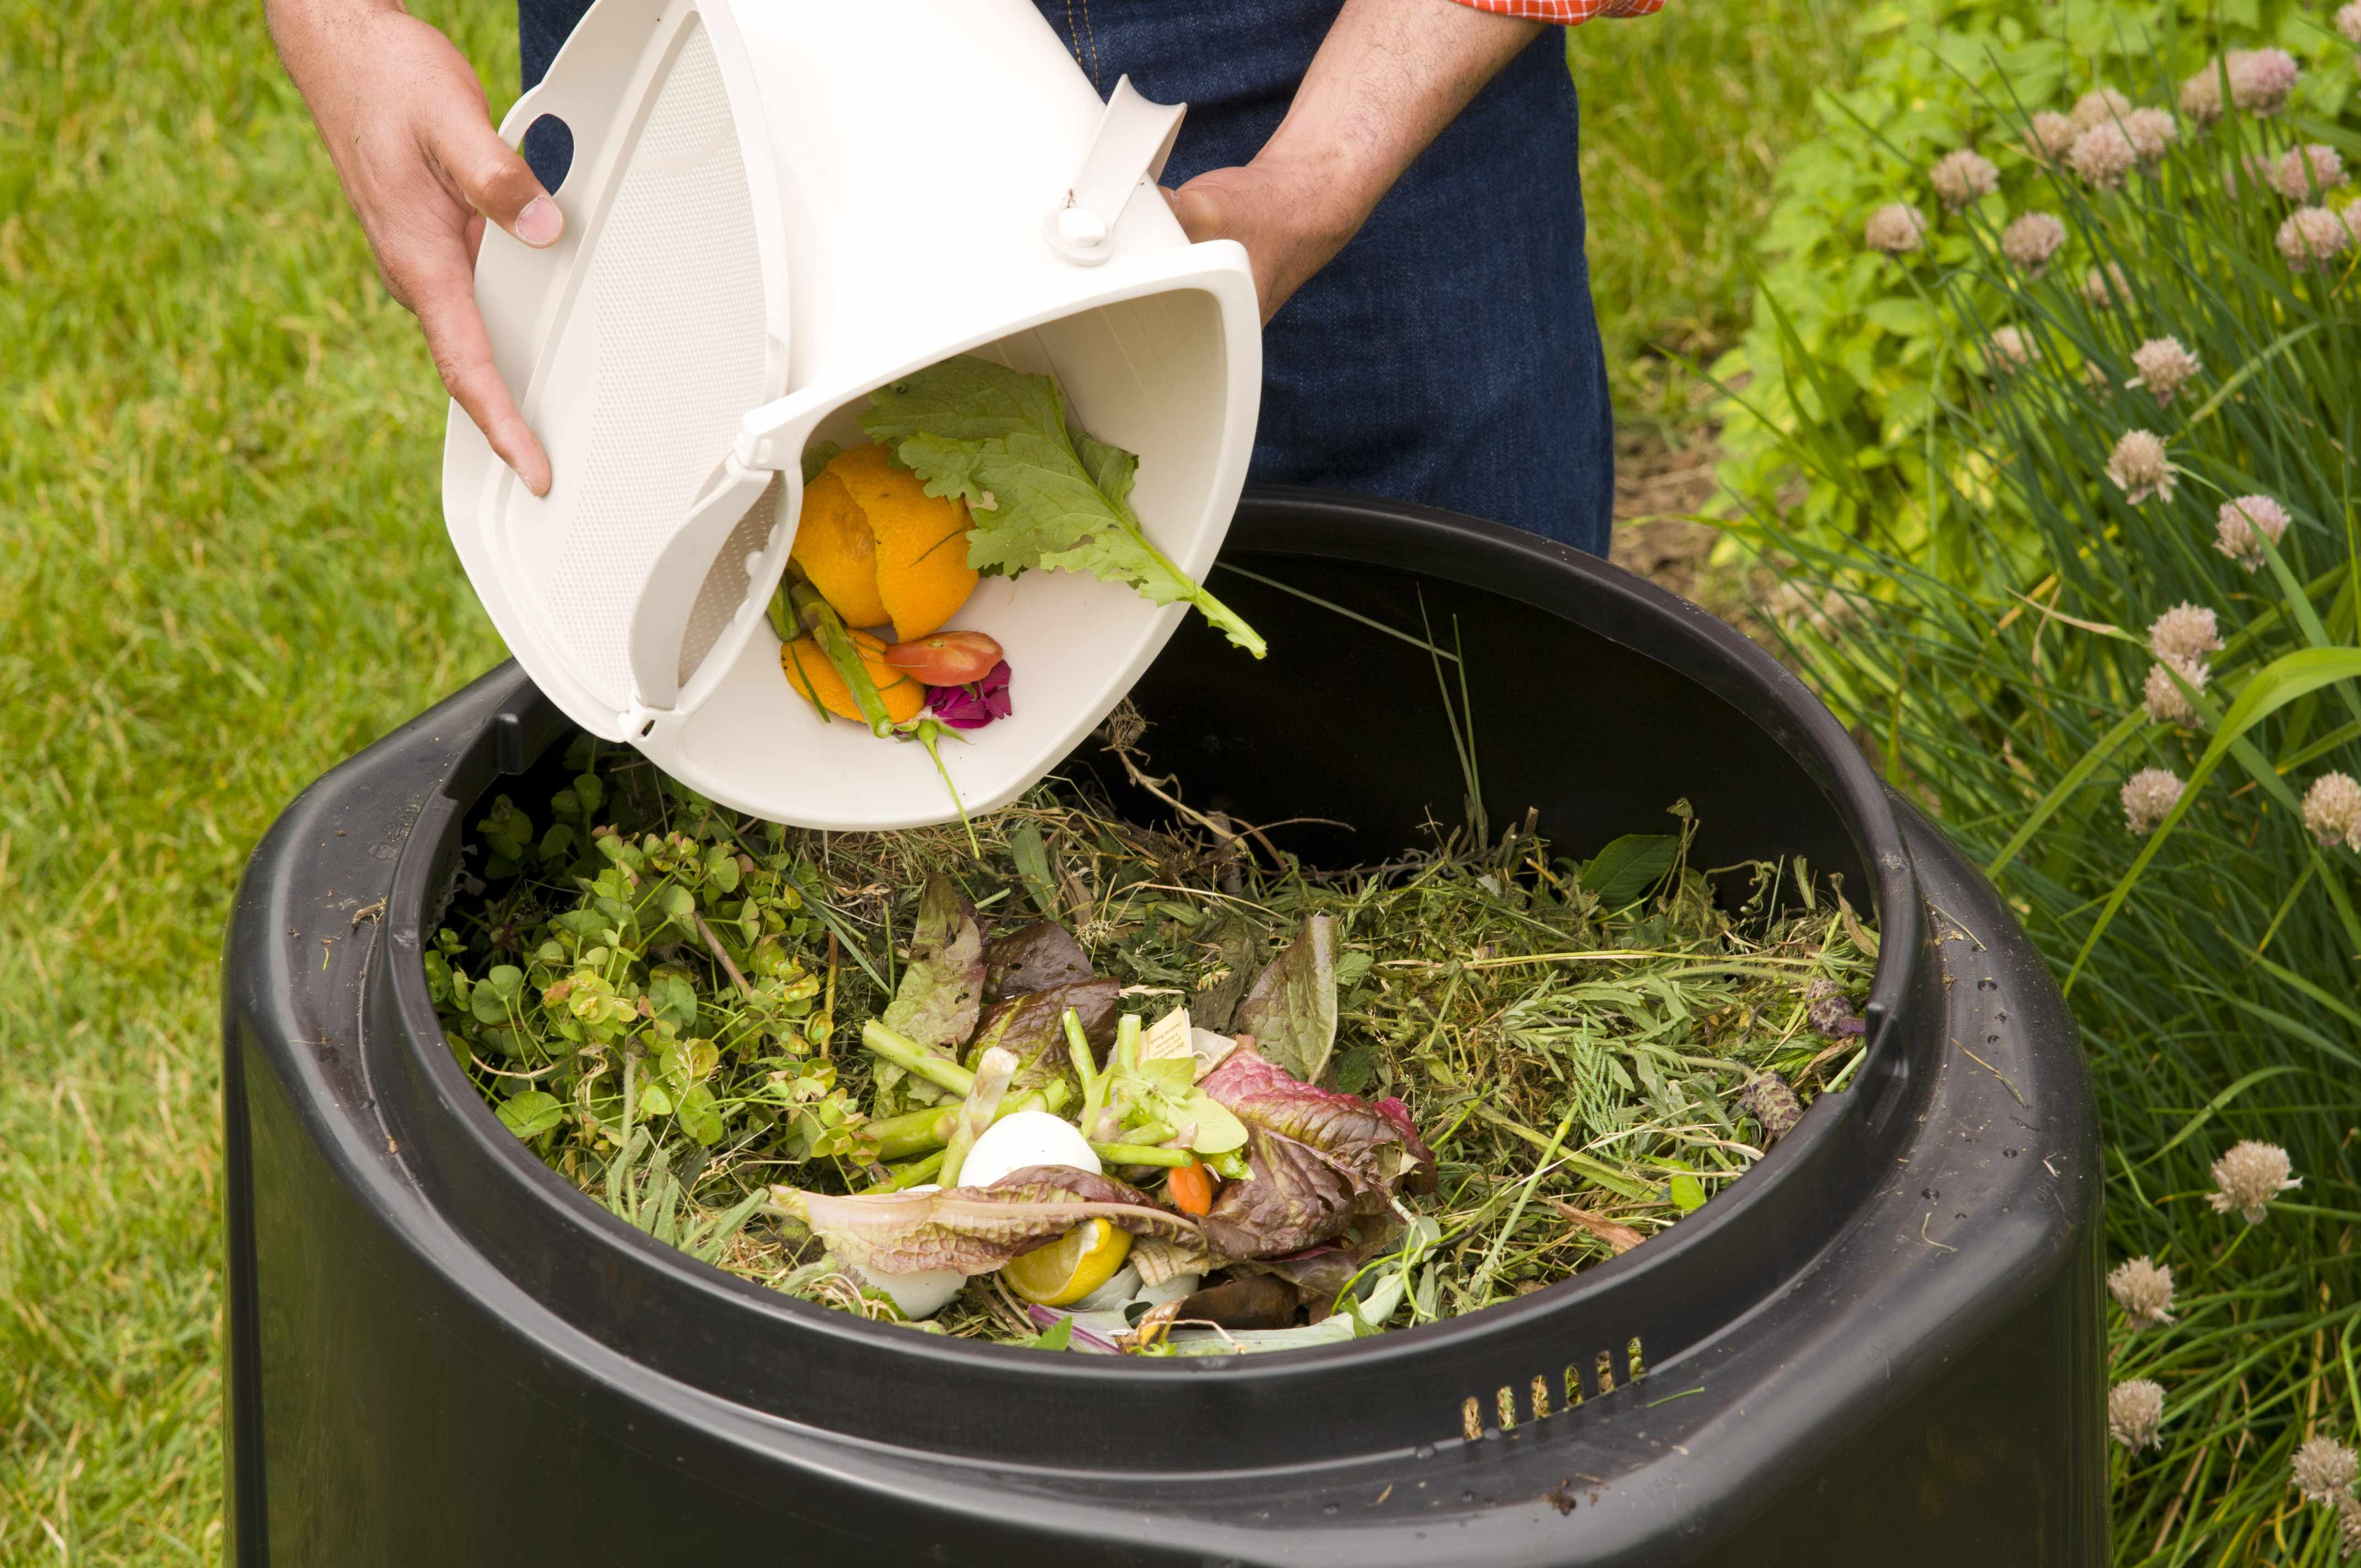 Preparing Compost for Kitchen Garden at Home: Beginners Guide